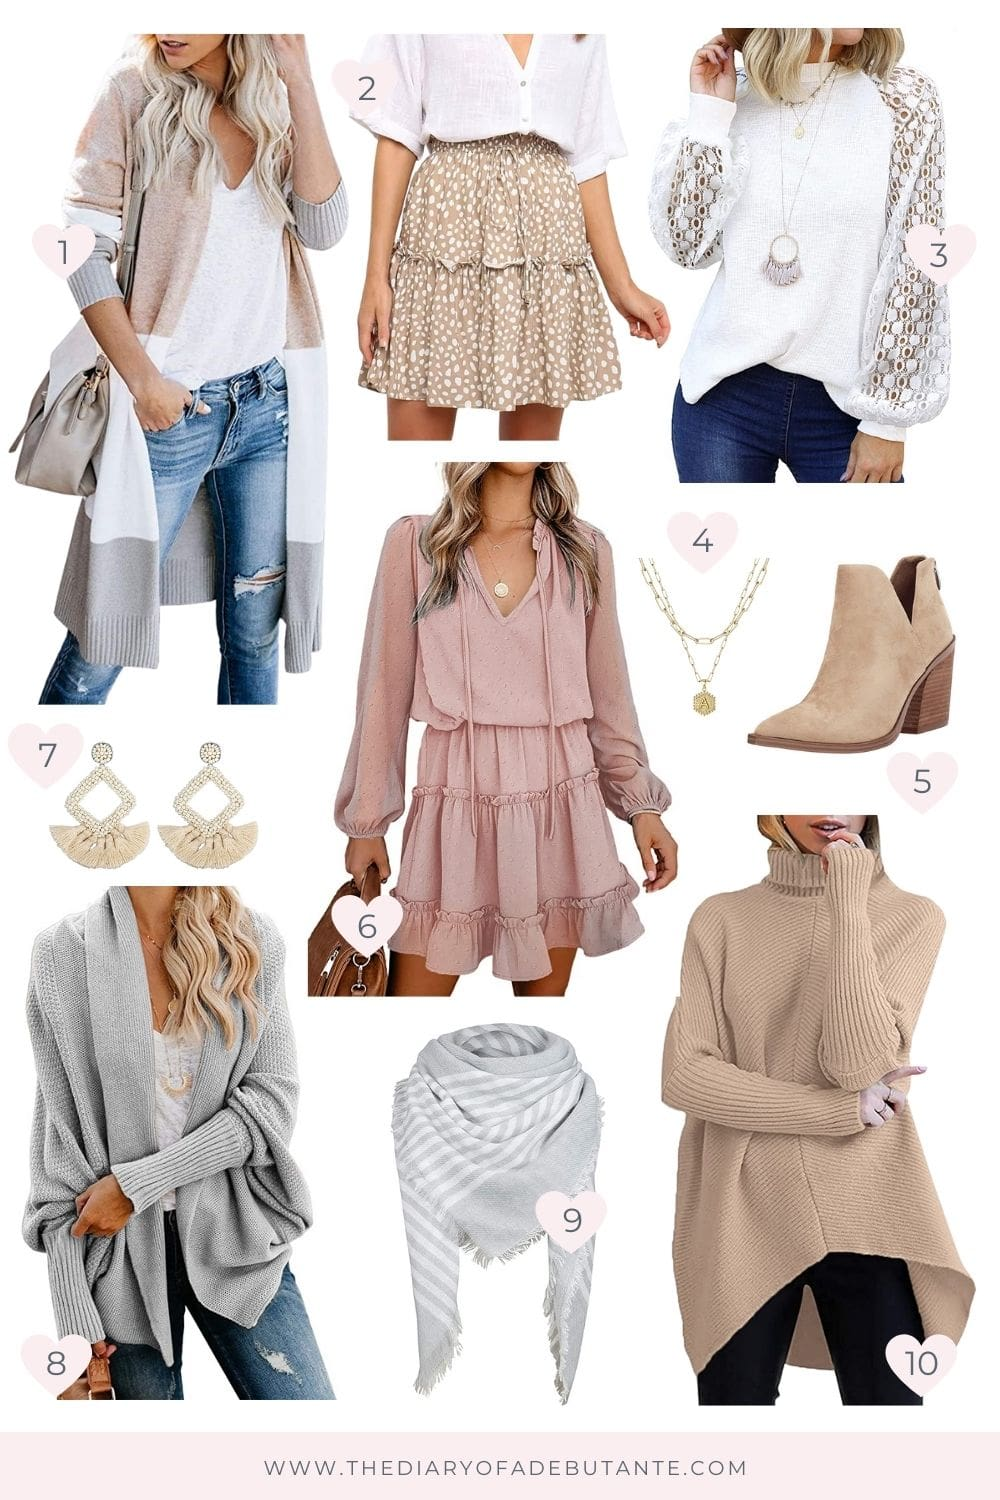 Top neutral Amazon Fashion finds for fall rounded up by affordable fashion blogger Stephanie Ziajka on Diary of a Debutante